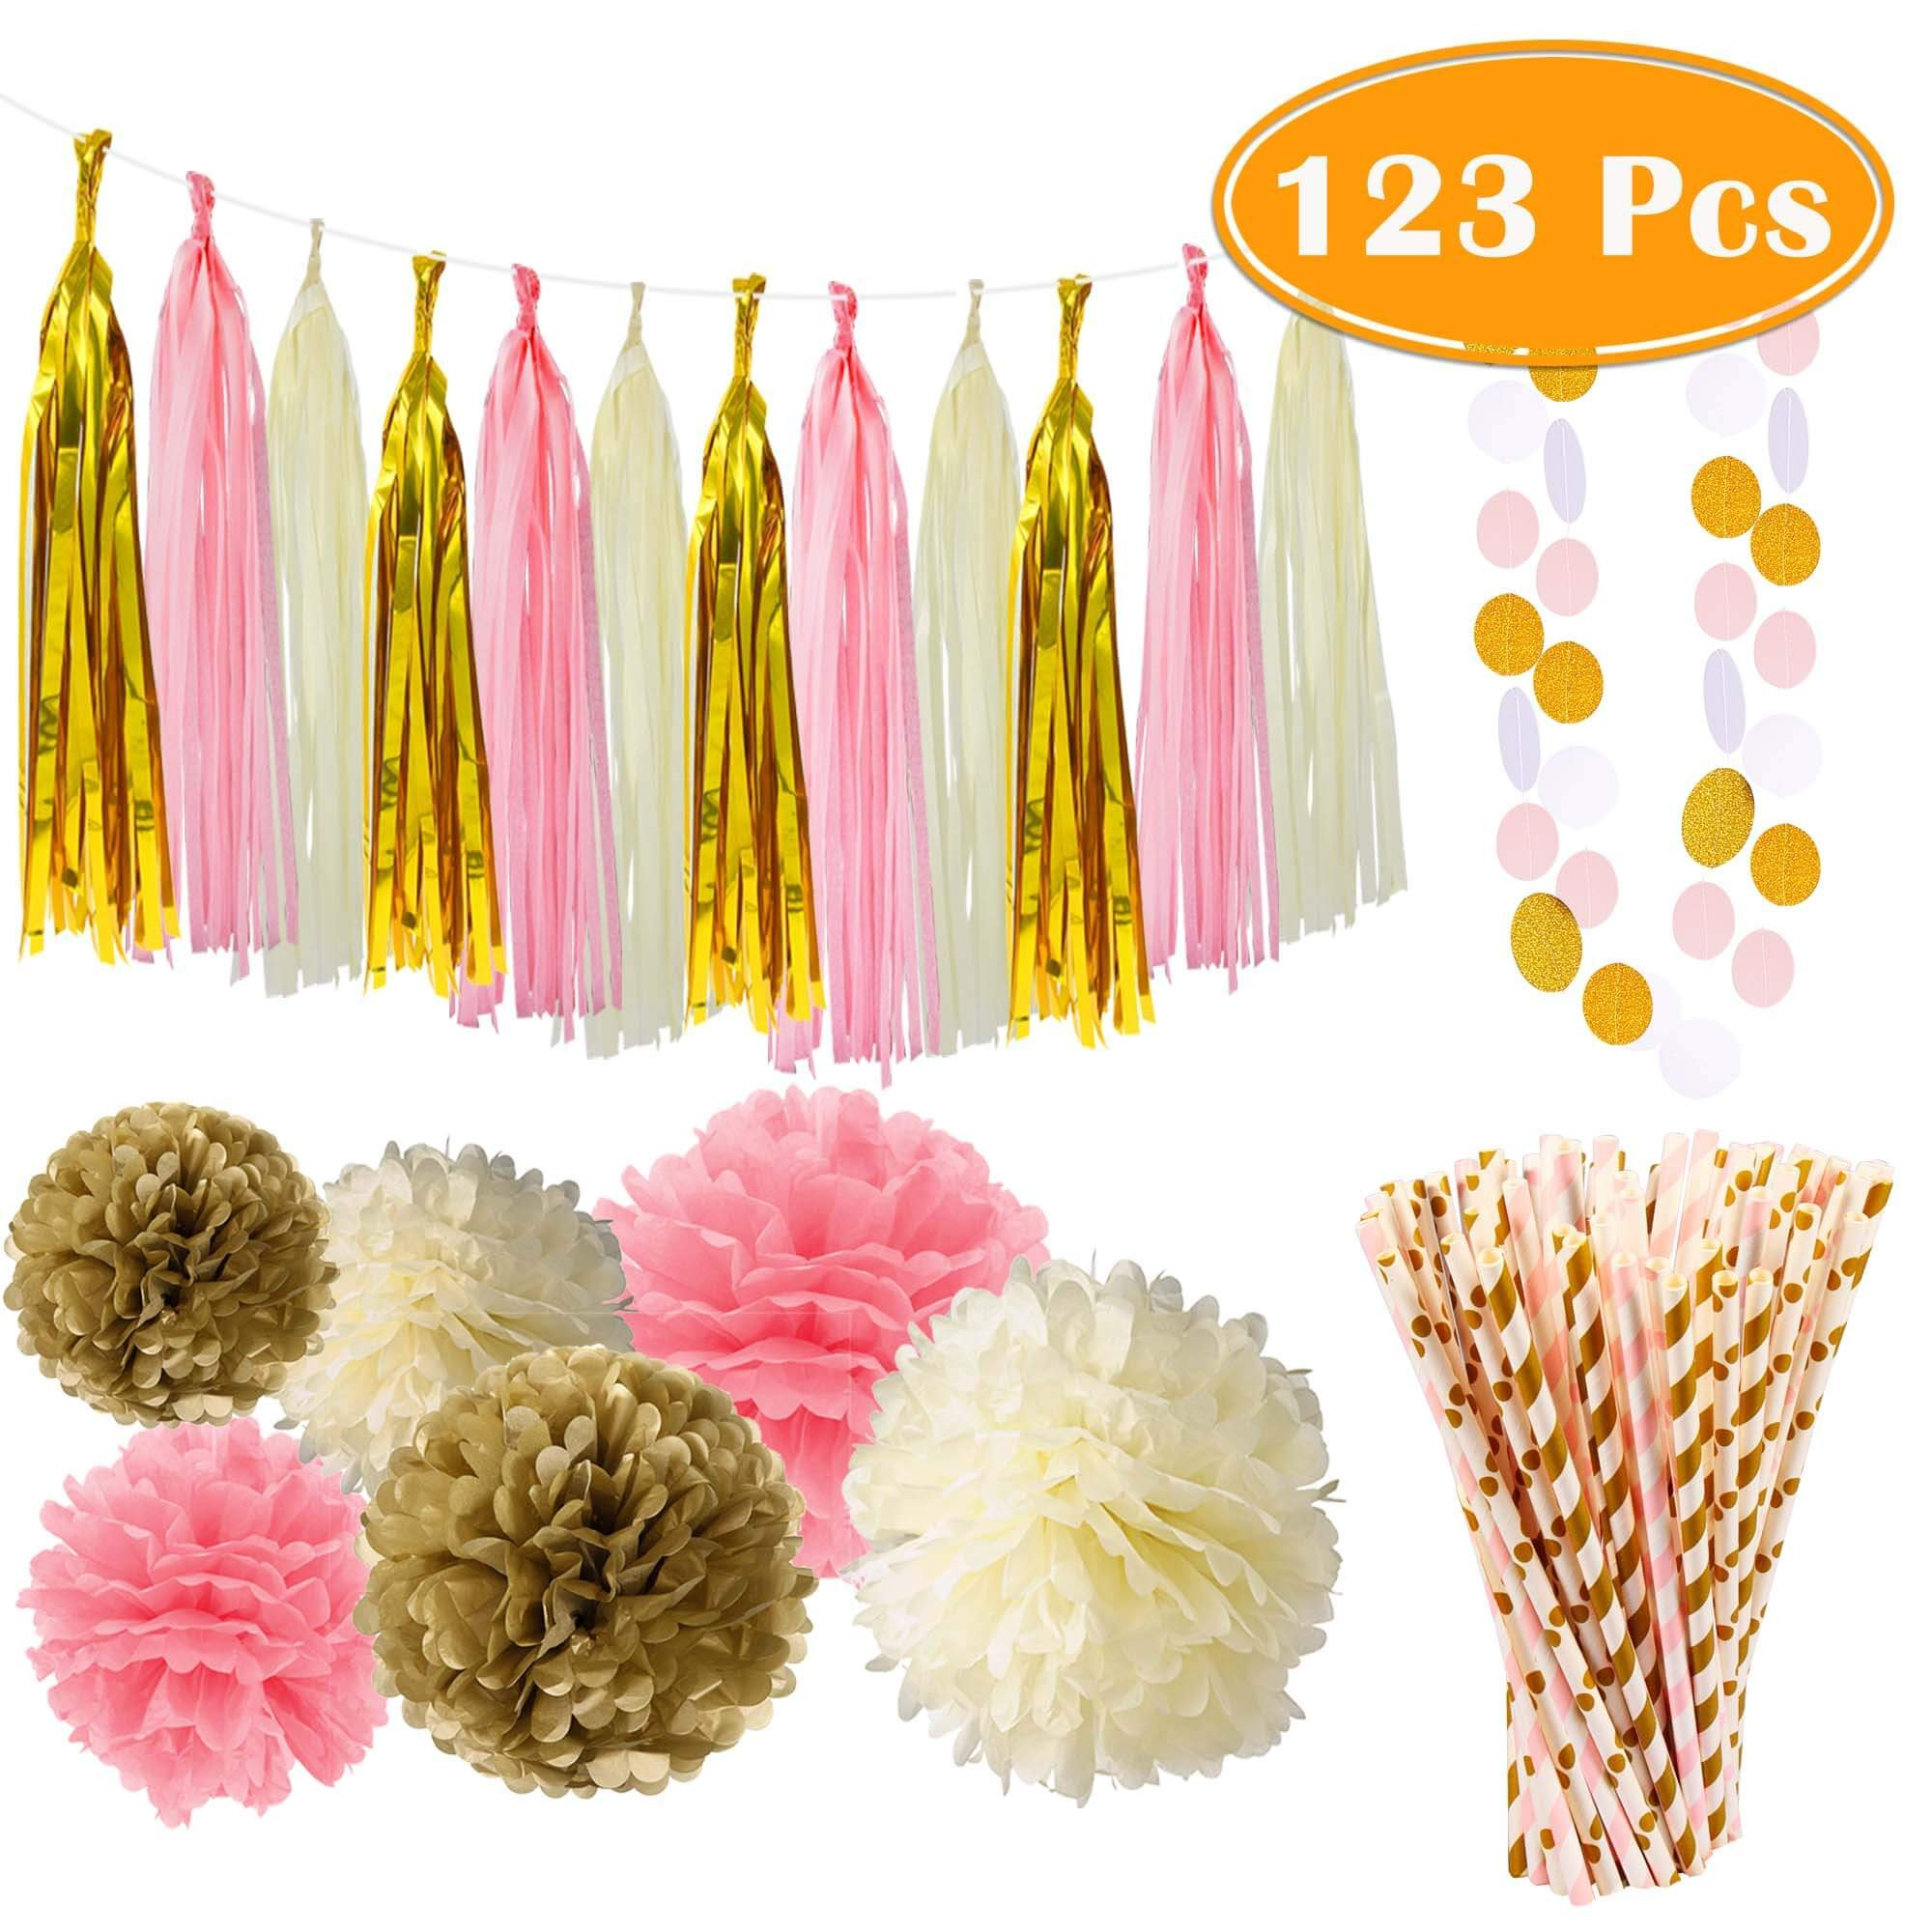 Paxcoo 123 Pcs Pink and Gold Party Supplies with Paper Straws for Mom's Day Decorations, Baby Shower, Birthday and Wedding Decorations